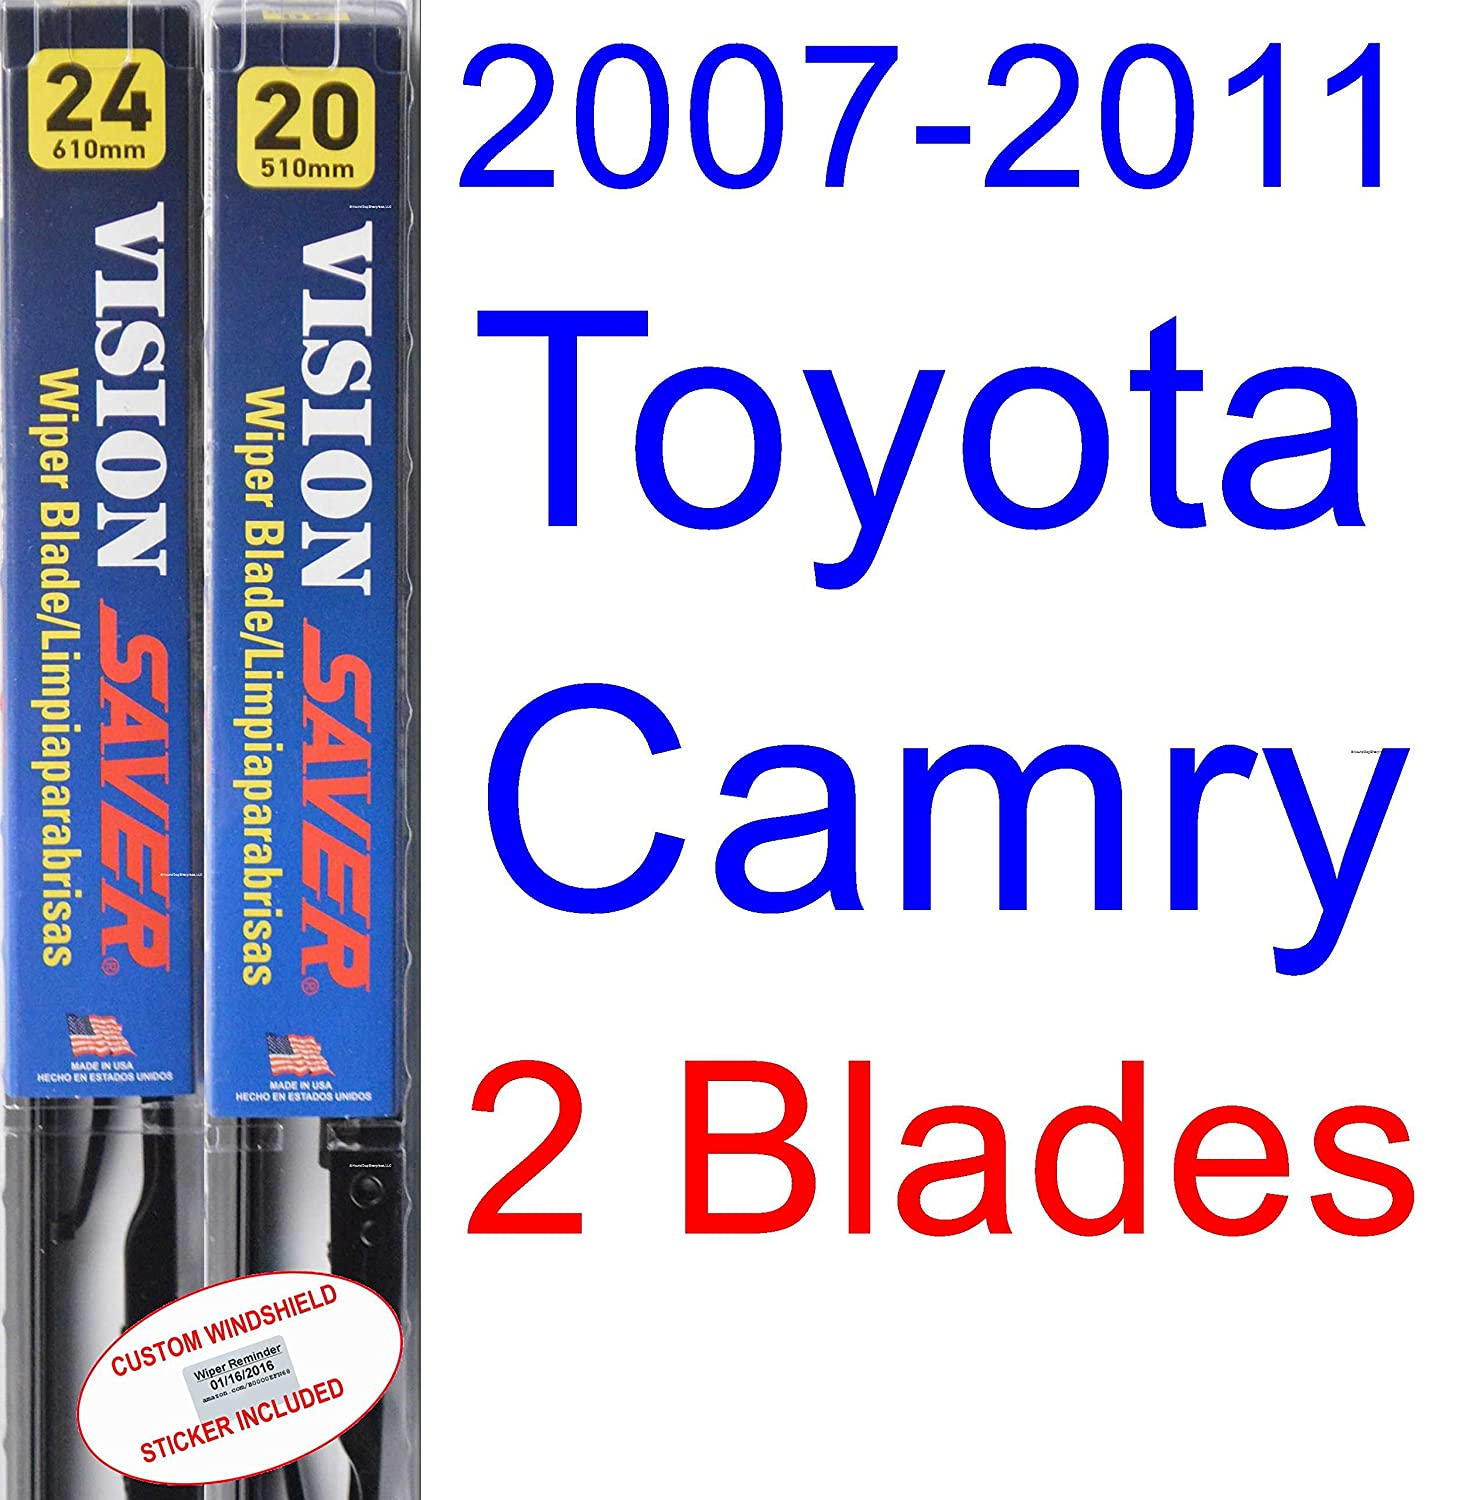 Amazon.com: 2007-2011 Toyota Camry Replacement Wiper Blade Set/Kit (Set of 2 Blades) (Saver Automotive Products-Vision Saver) (2008,2009,2010): Automotive